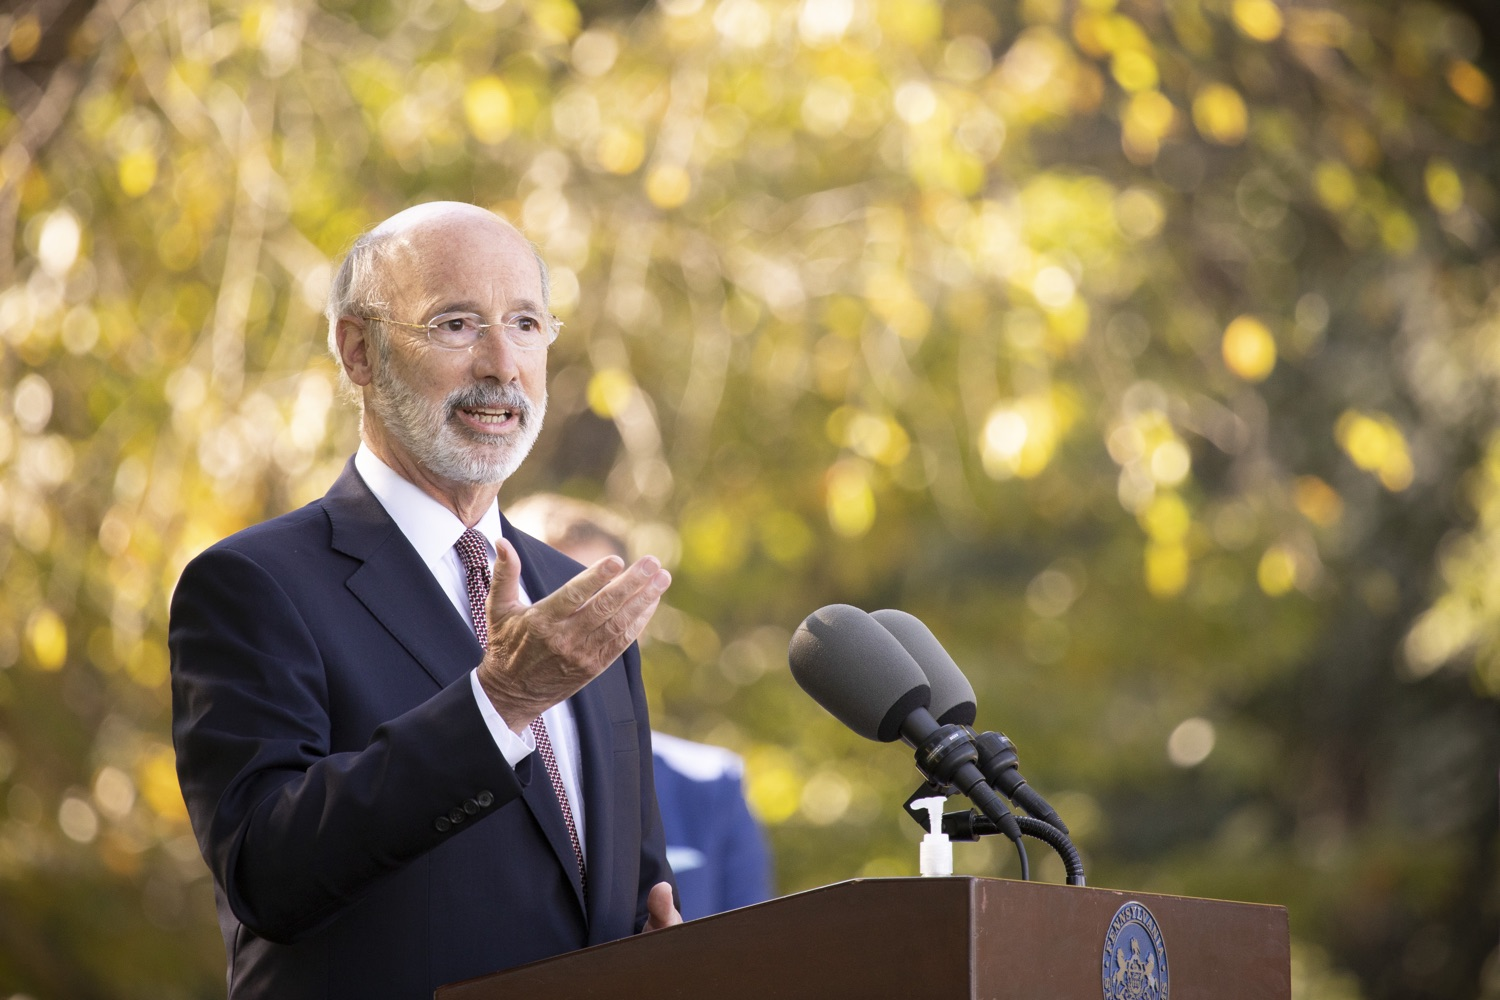 "<a href=""https://filesource.wostreaming.net/commonwealthofpa/photo/18321_gov_aca_dz_001.jpg"" target=""_blank"">⇣ Download Photo<br></a>Pennsylvania Governor Tom Wolf speaking to the press.  As the number of positive COVID-19 cases rise in Pennsylvania and as we enter flu season, protecting the Affordable Care Act (ACA) and ensuring that all Pennsylvanians have access to health coverage are more important than ever, Governor Tom Wolf said today in Chester County. The governor was joined by local elected officials and representatives from local health care organizations. Landenberg, PA  October 15, 2020"